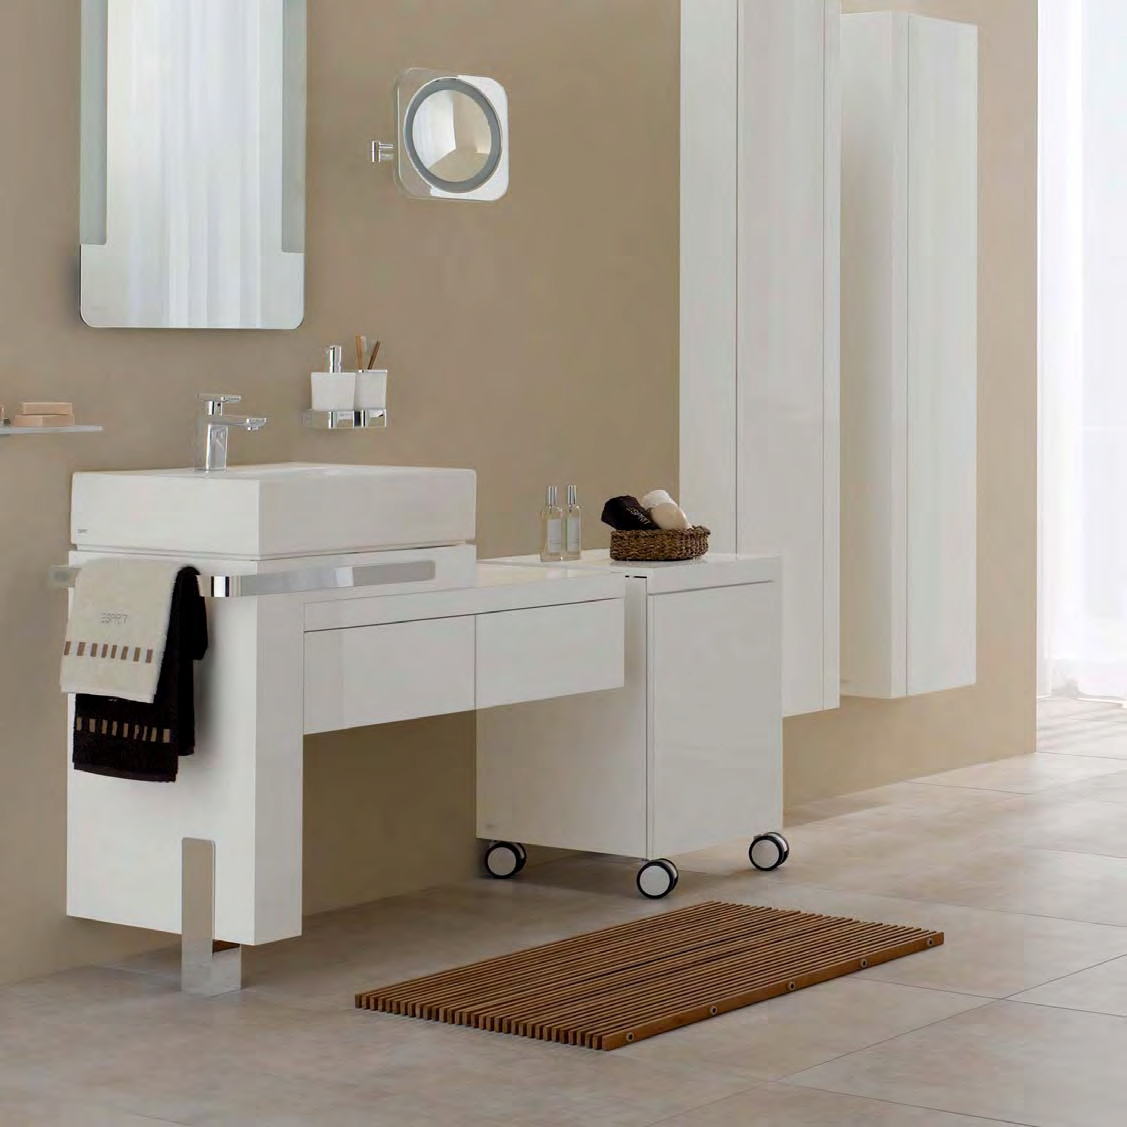 Esprit Bathroom Concept by Kludi - 05